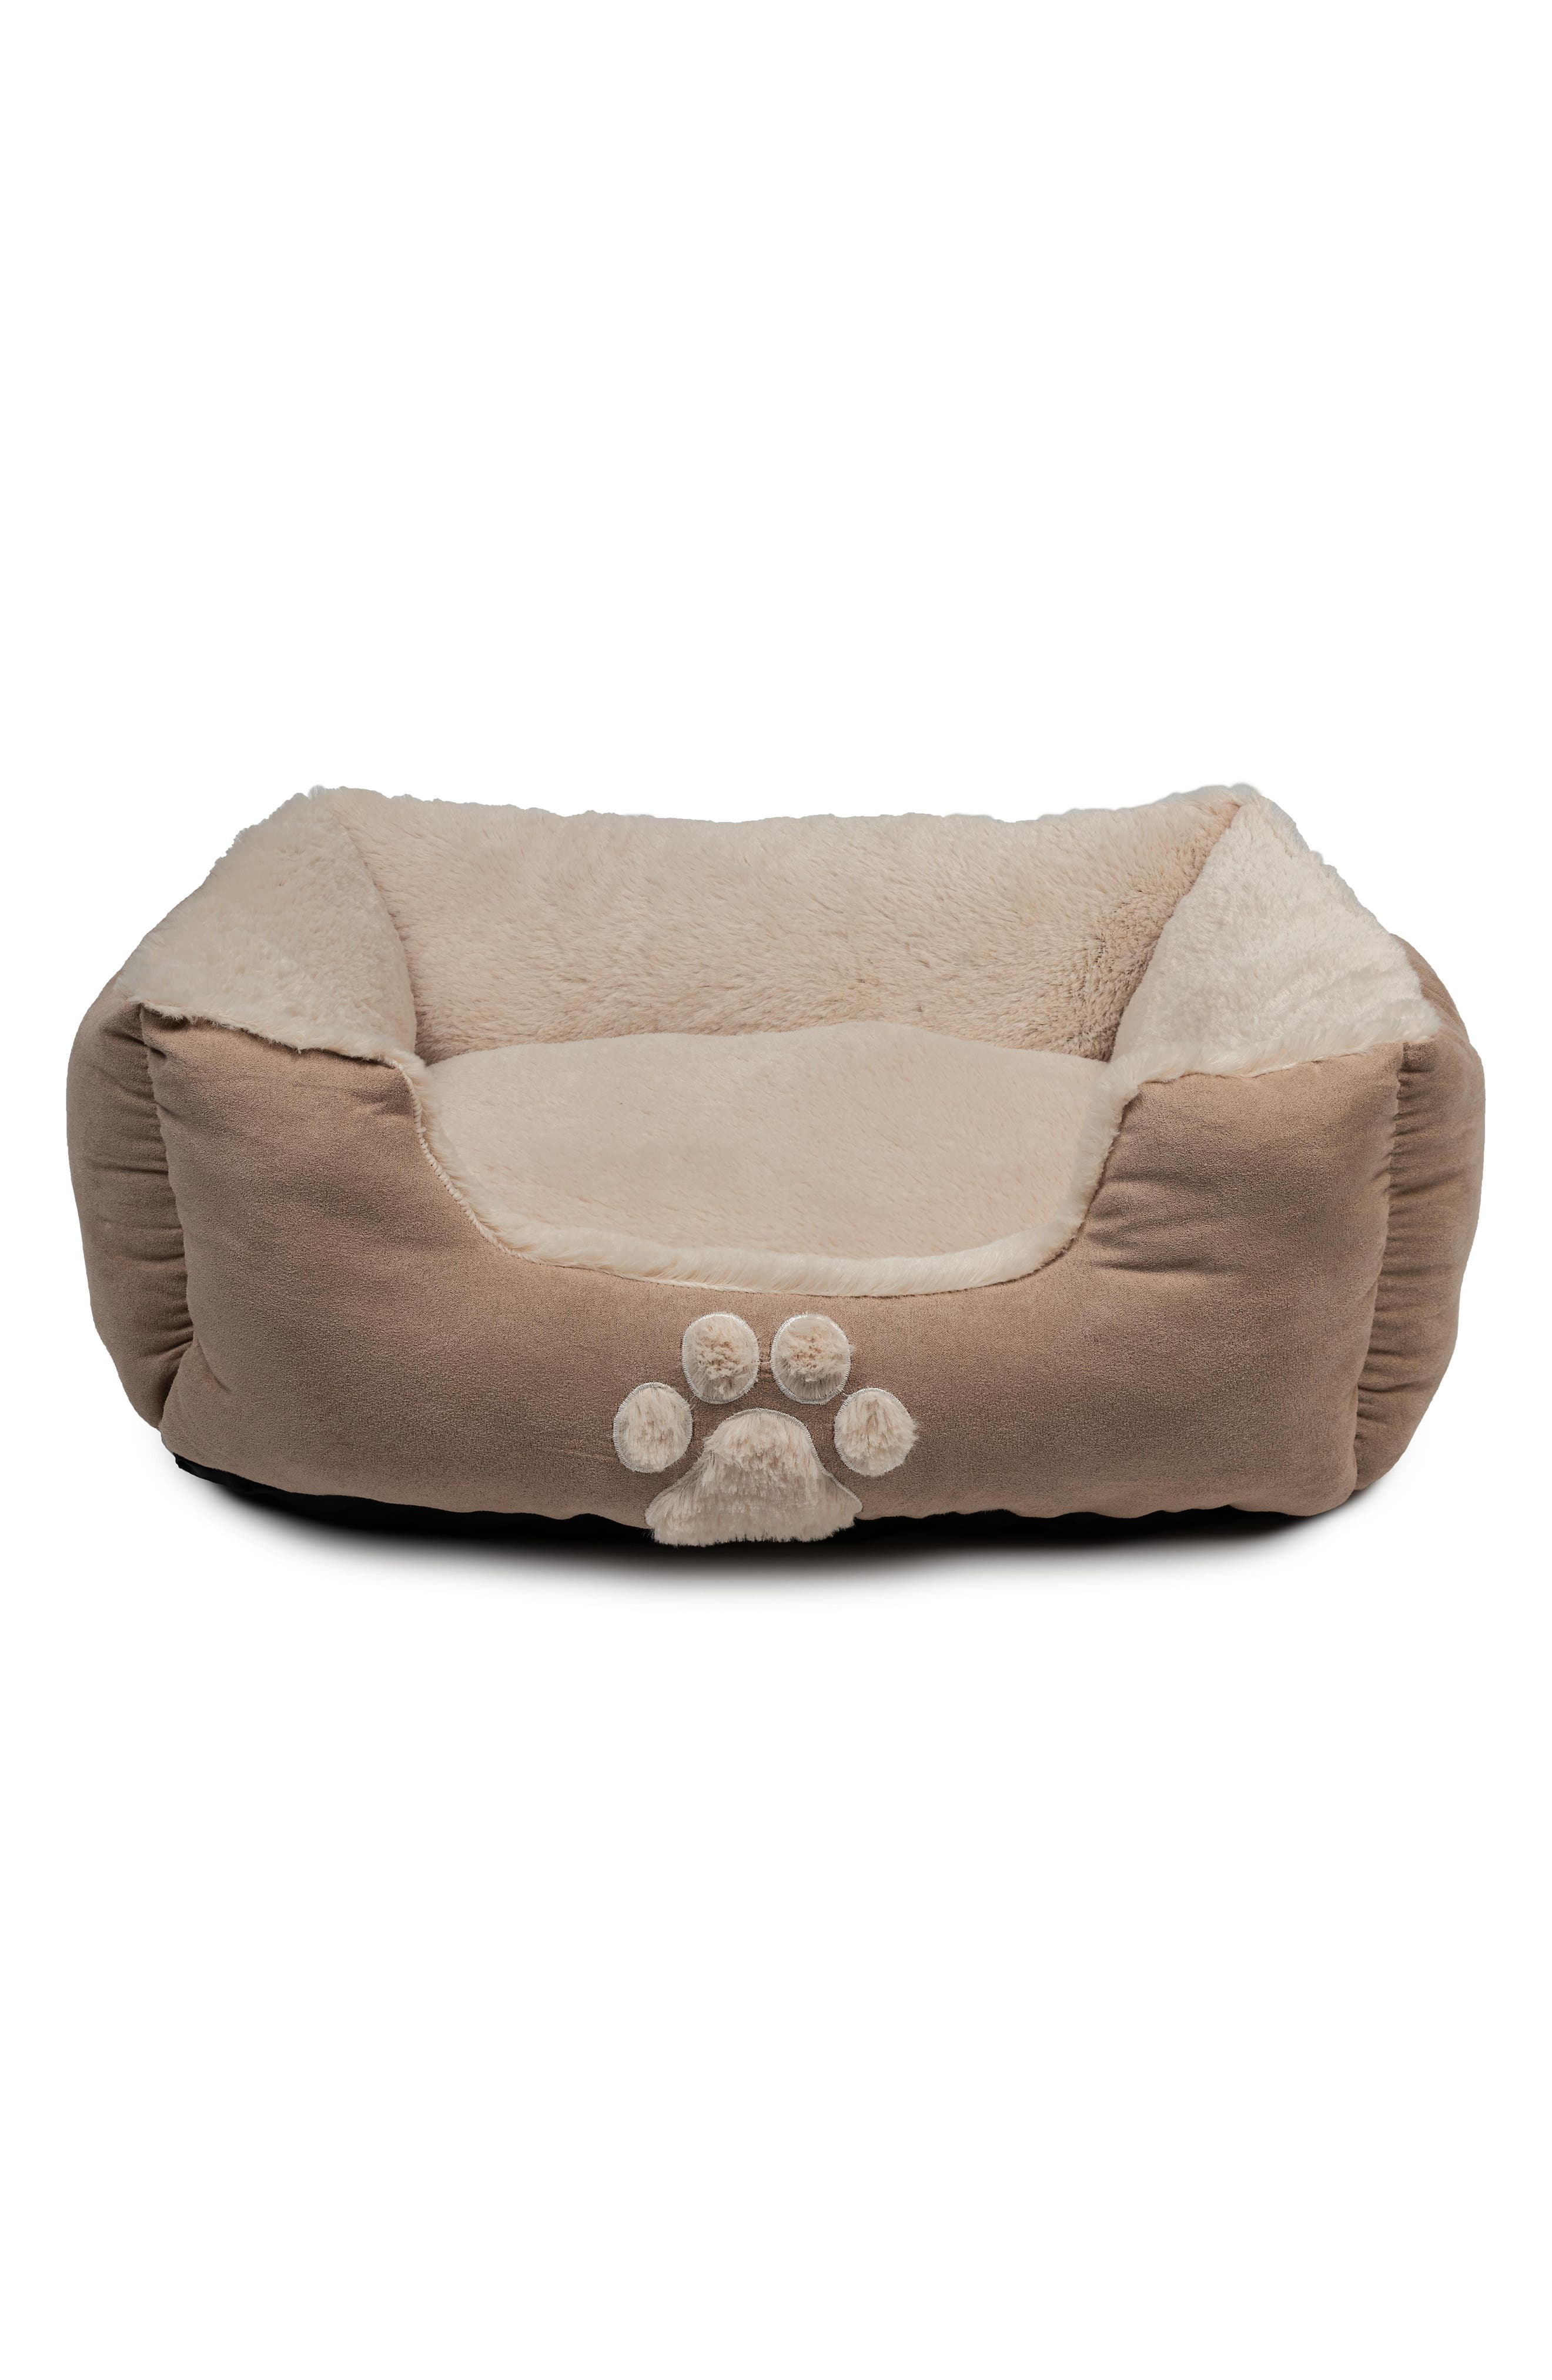 Roxi Square Pet Bed,                         Main,                         color, Taupe